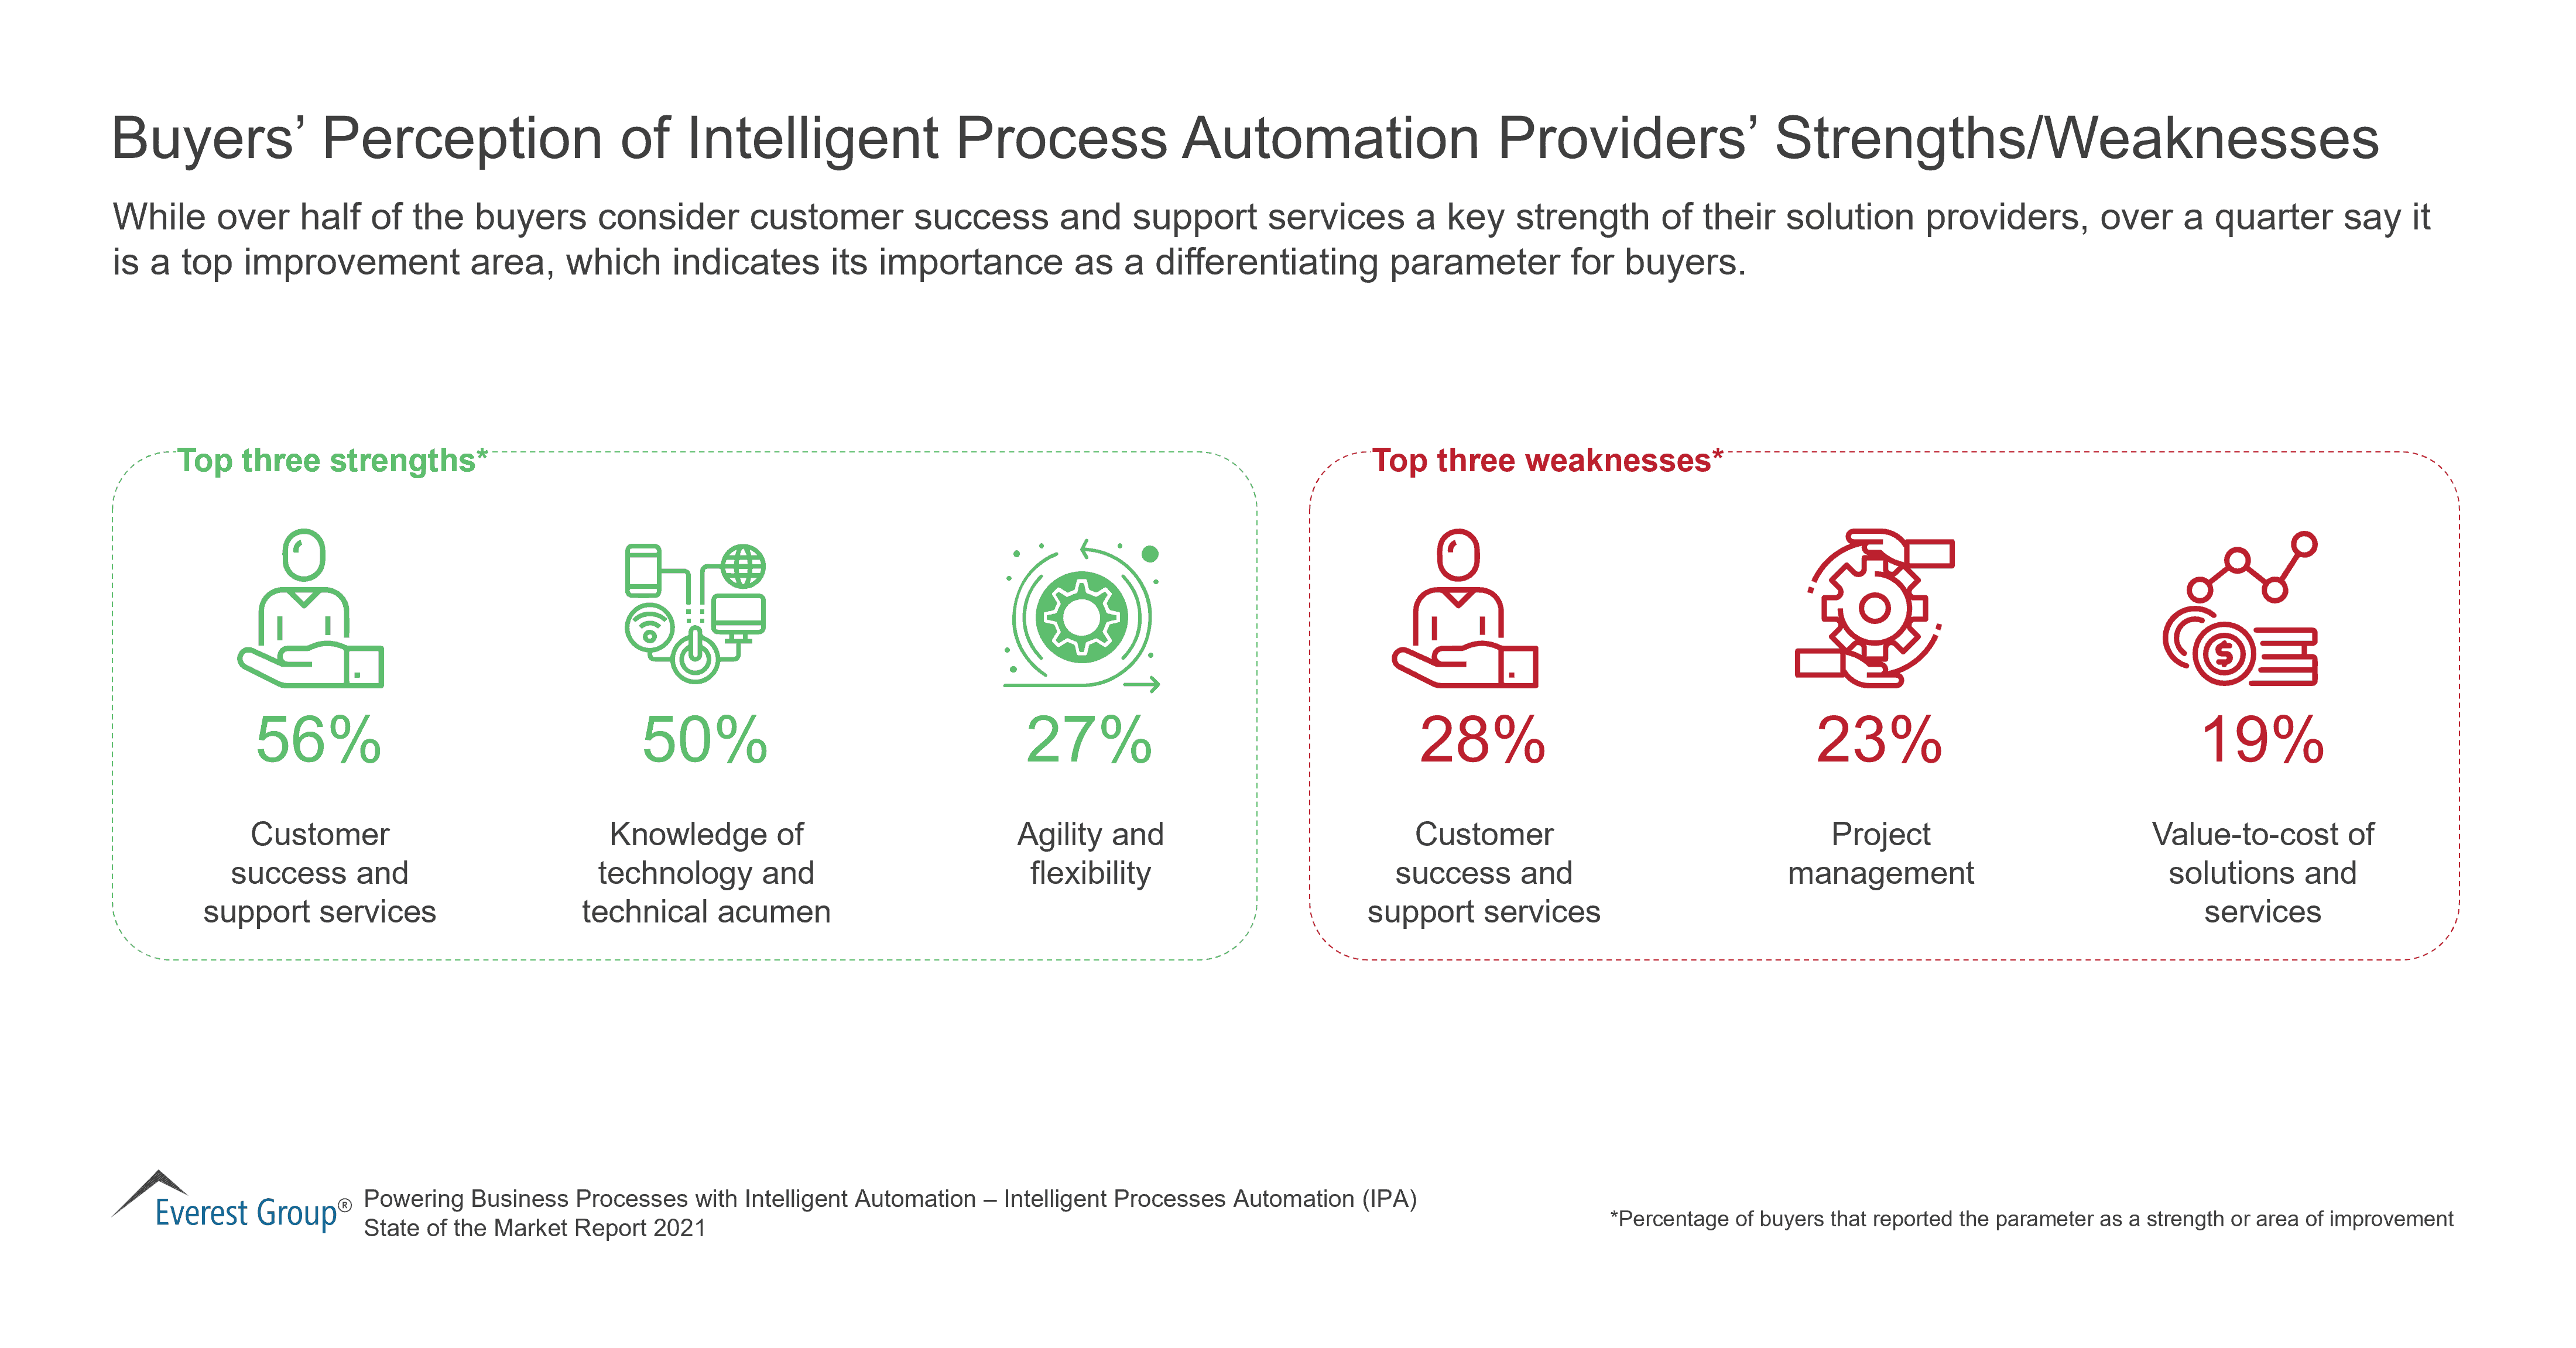 Buyers' Perception of Intelligent Process Automation Providers' Strengths-Weaknesses